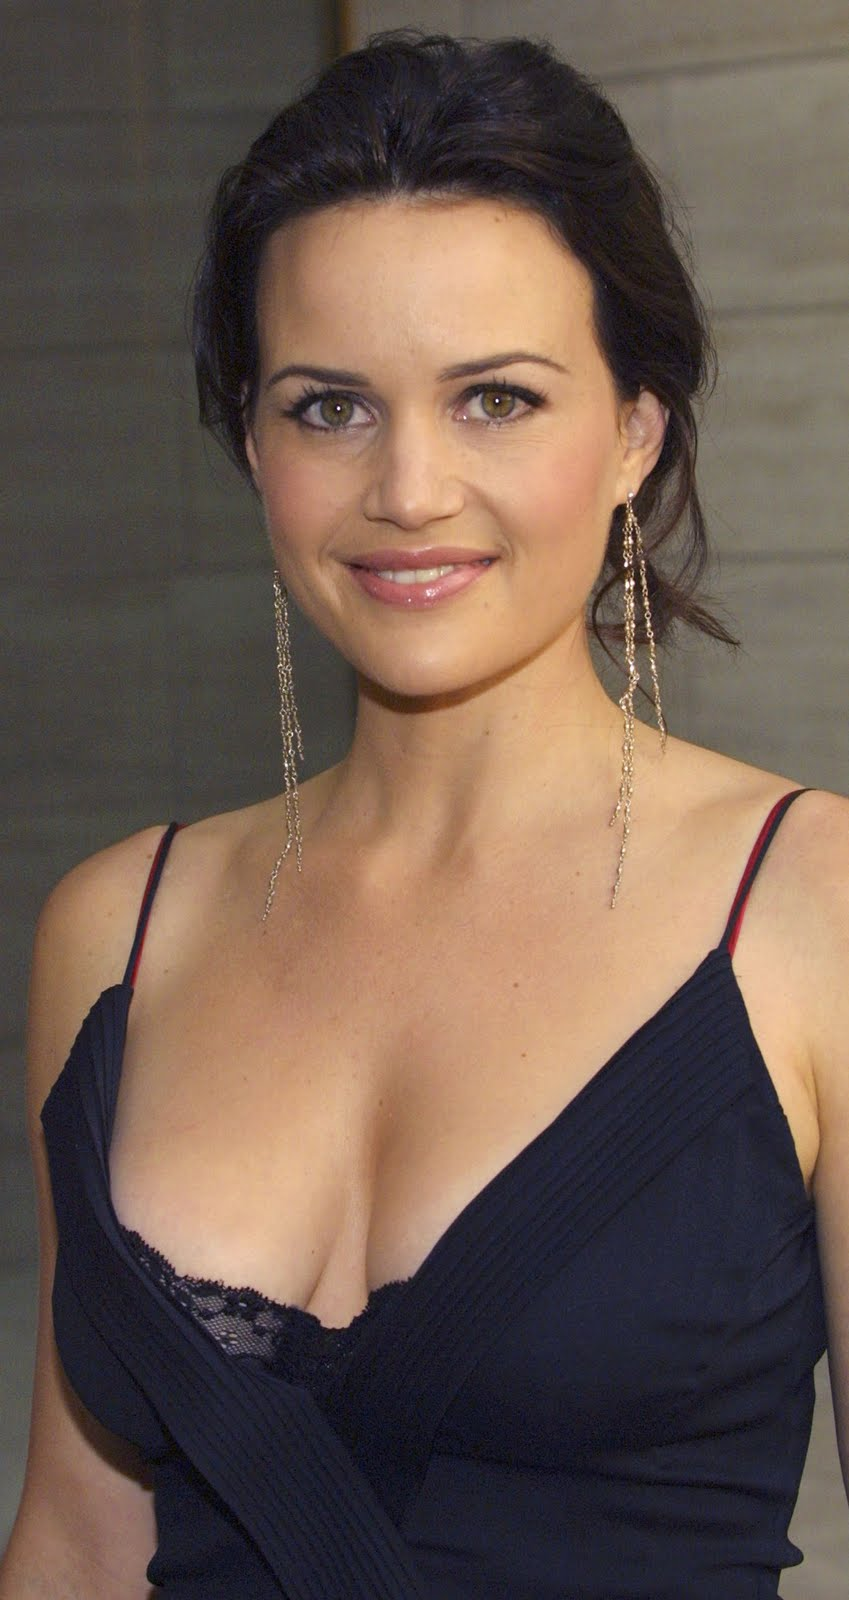 Carla Gugino Backgrounds, Compatible - PC, Mobile, Gadgets| 849x1600 px